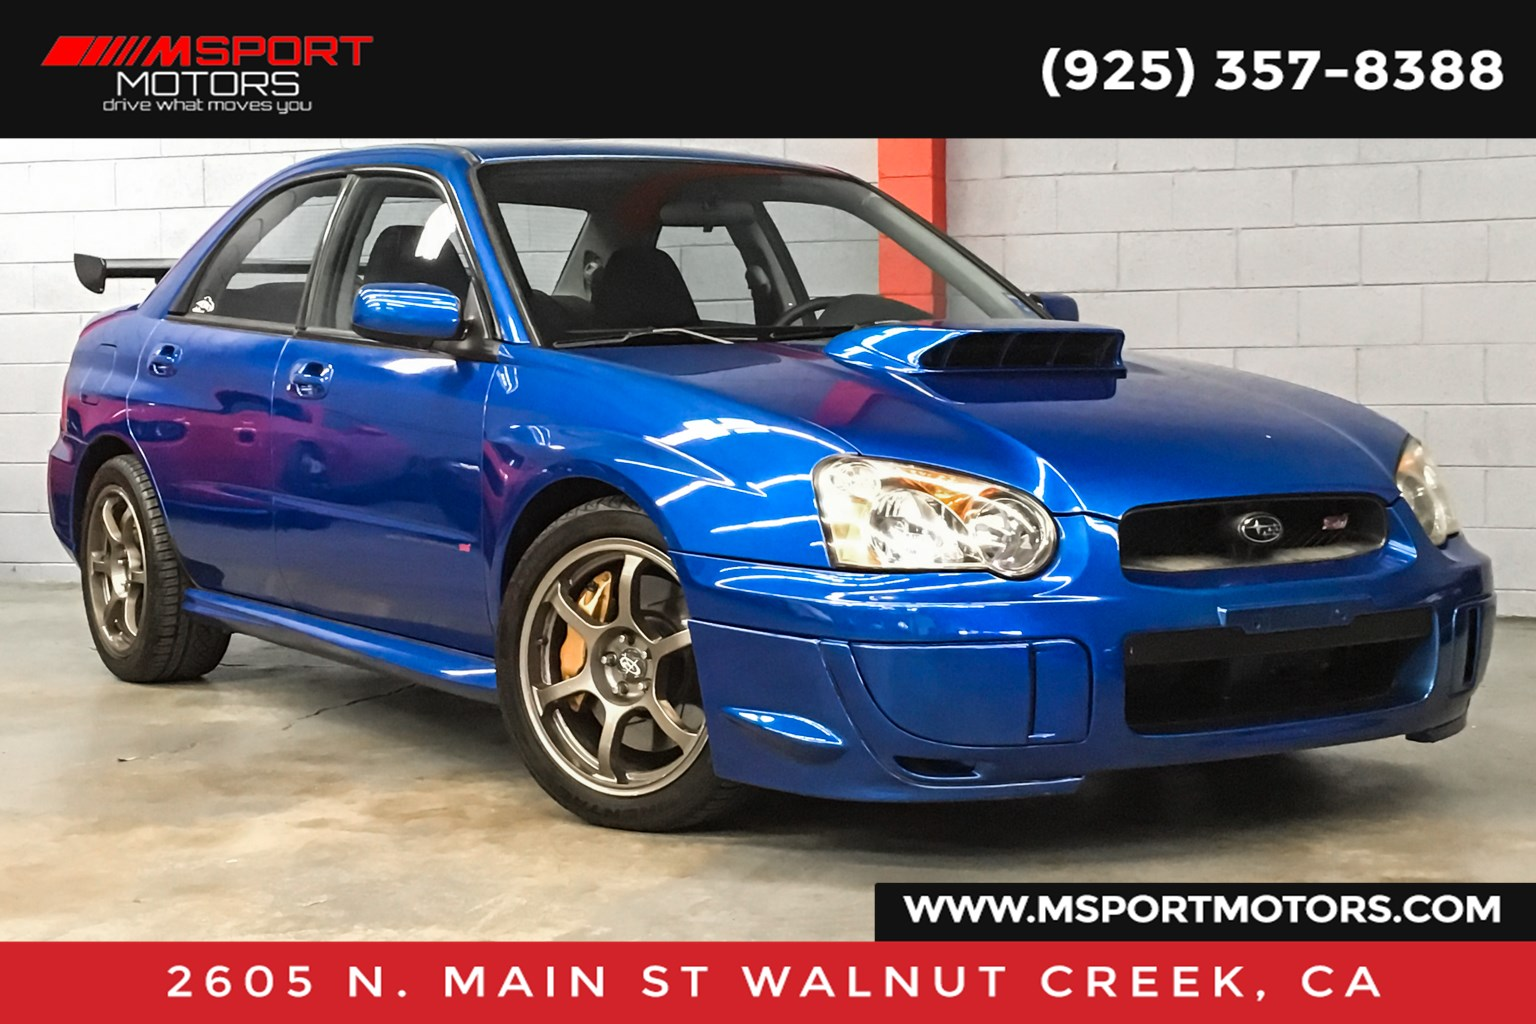 Walnut Creek Subaru >> Used 2004 Subaru Impreza Sedan Wrx Sti In Walnut Creek